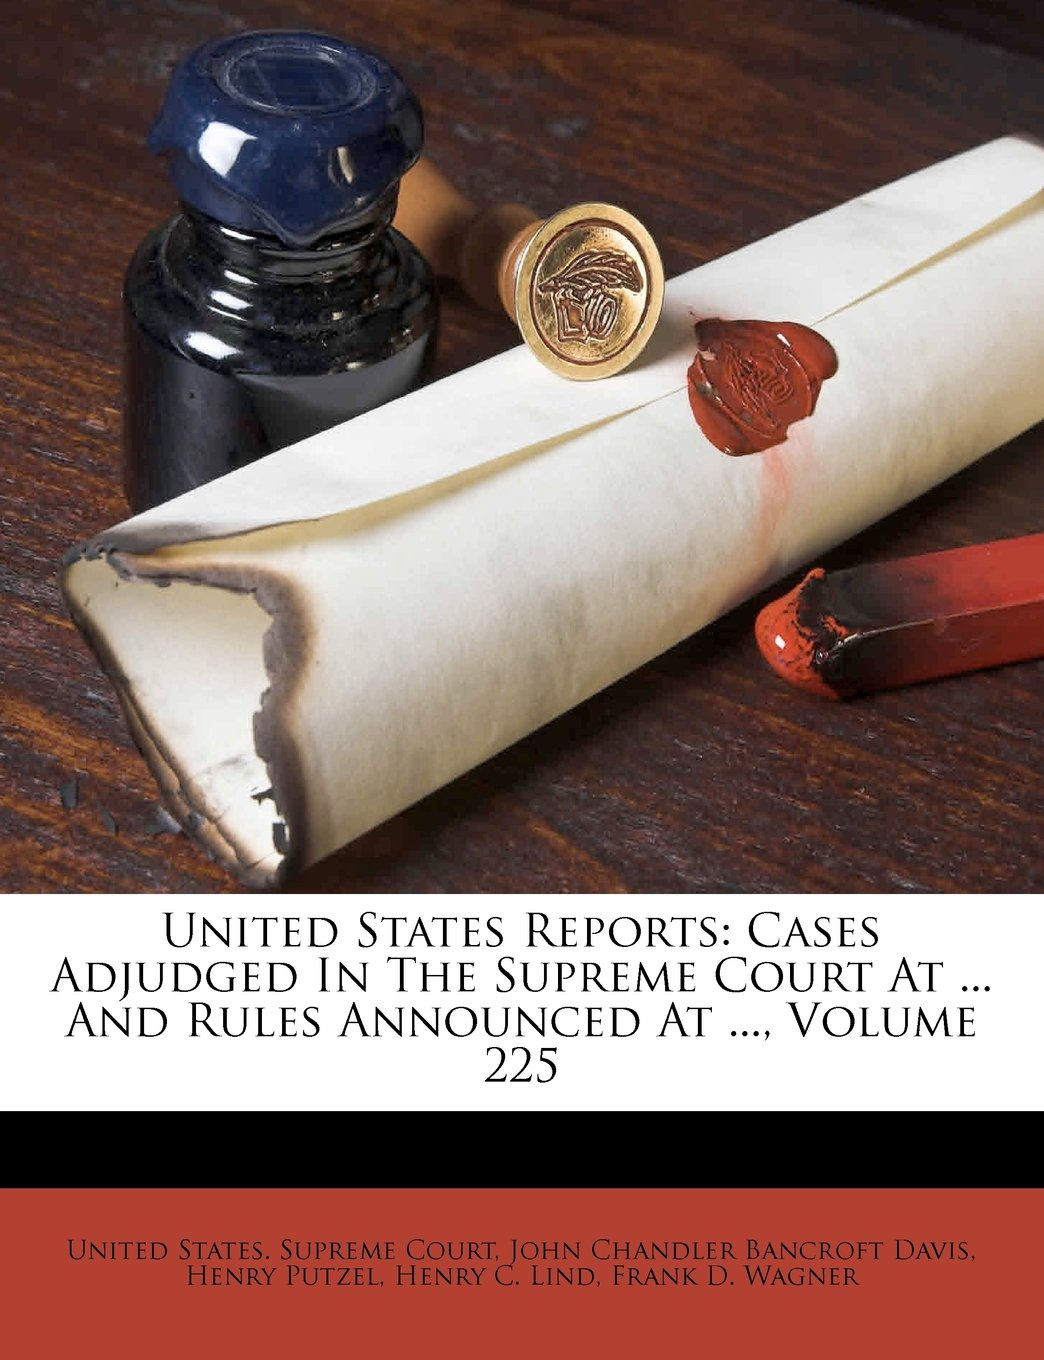 United States Reports: Cases Adjudged In The Supreme Court At ... And Rules Announced At ..., Volume 225 PDF Text fb2 book